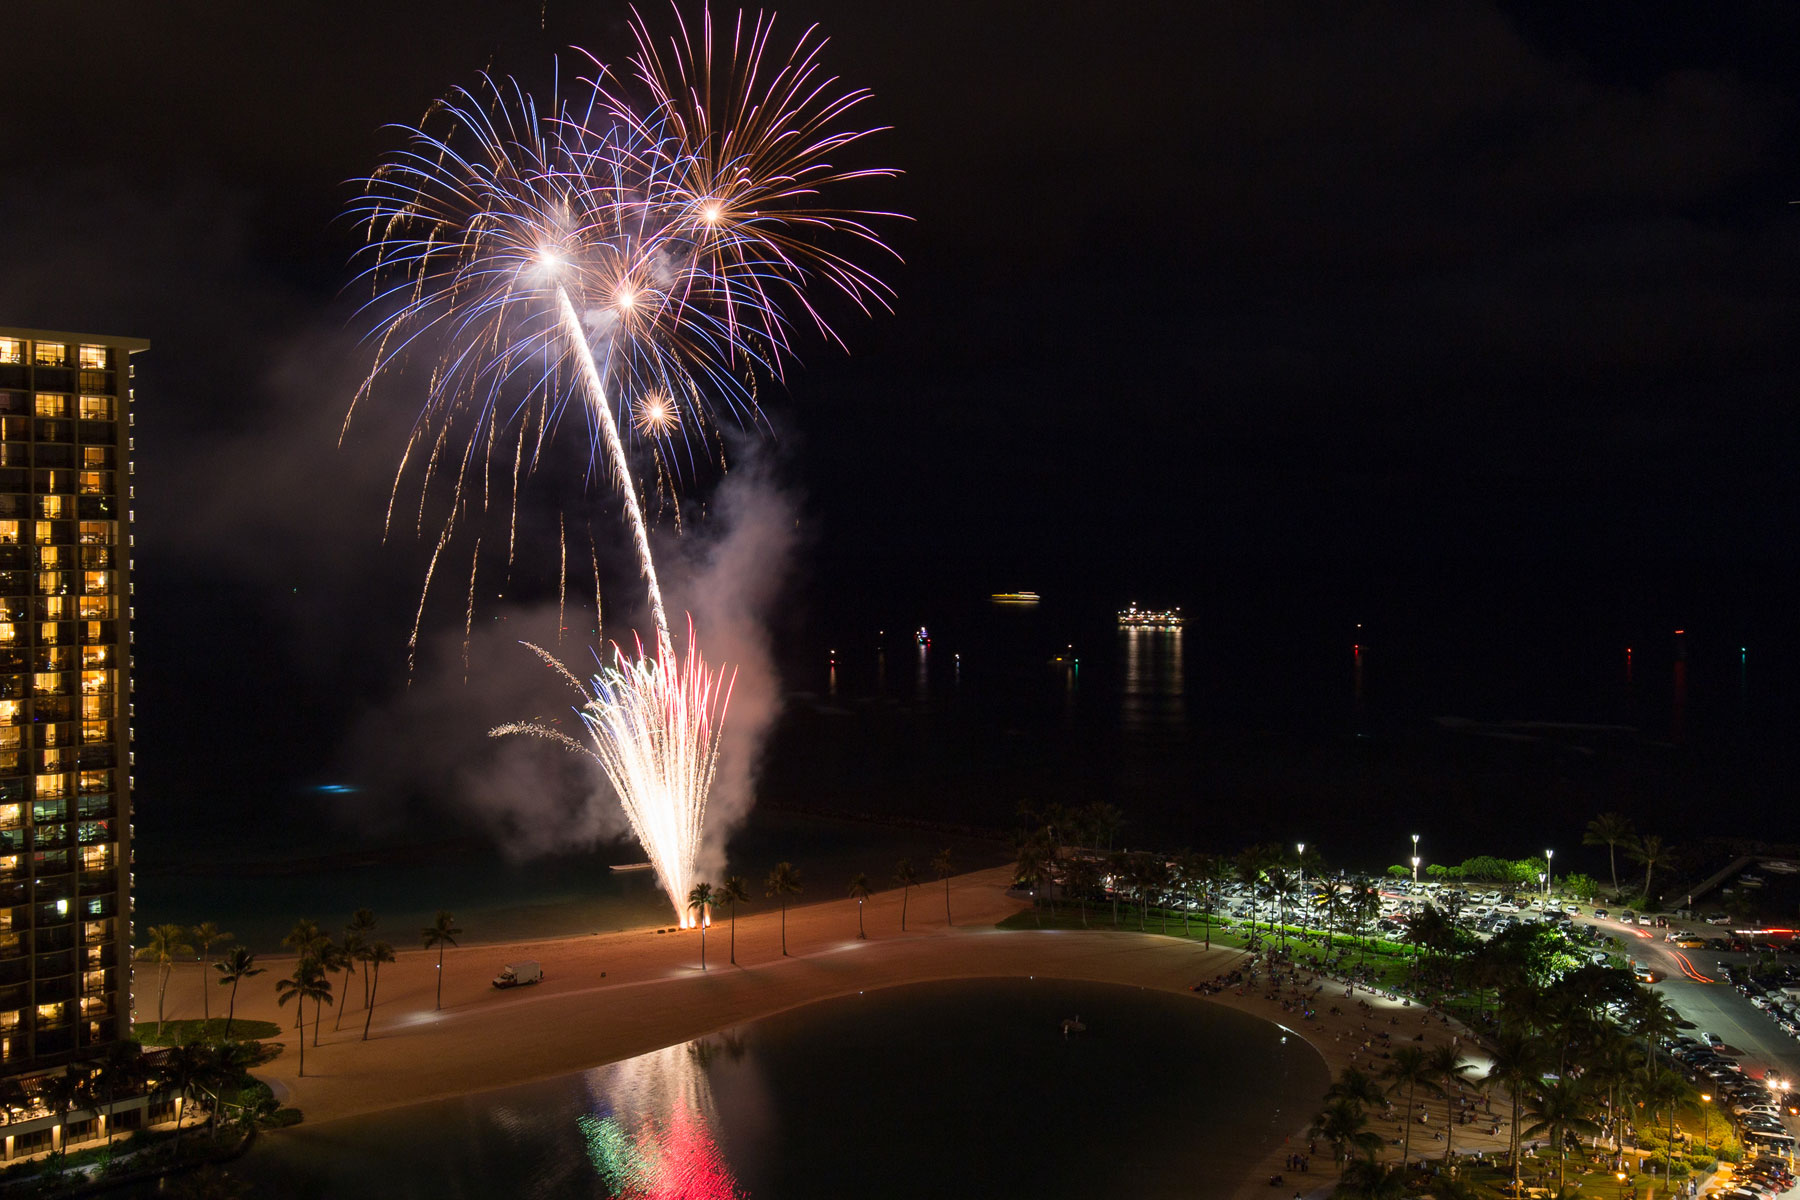 Friday night fireworks on the beach outside the Ilikai on Waikiki